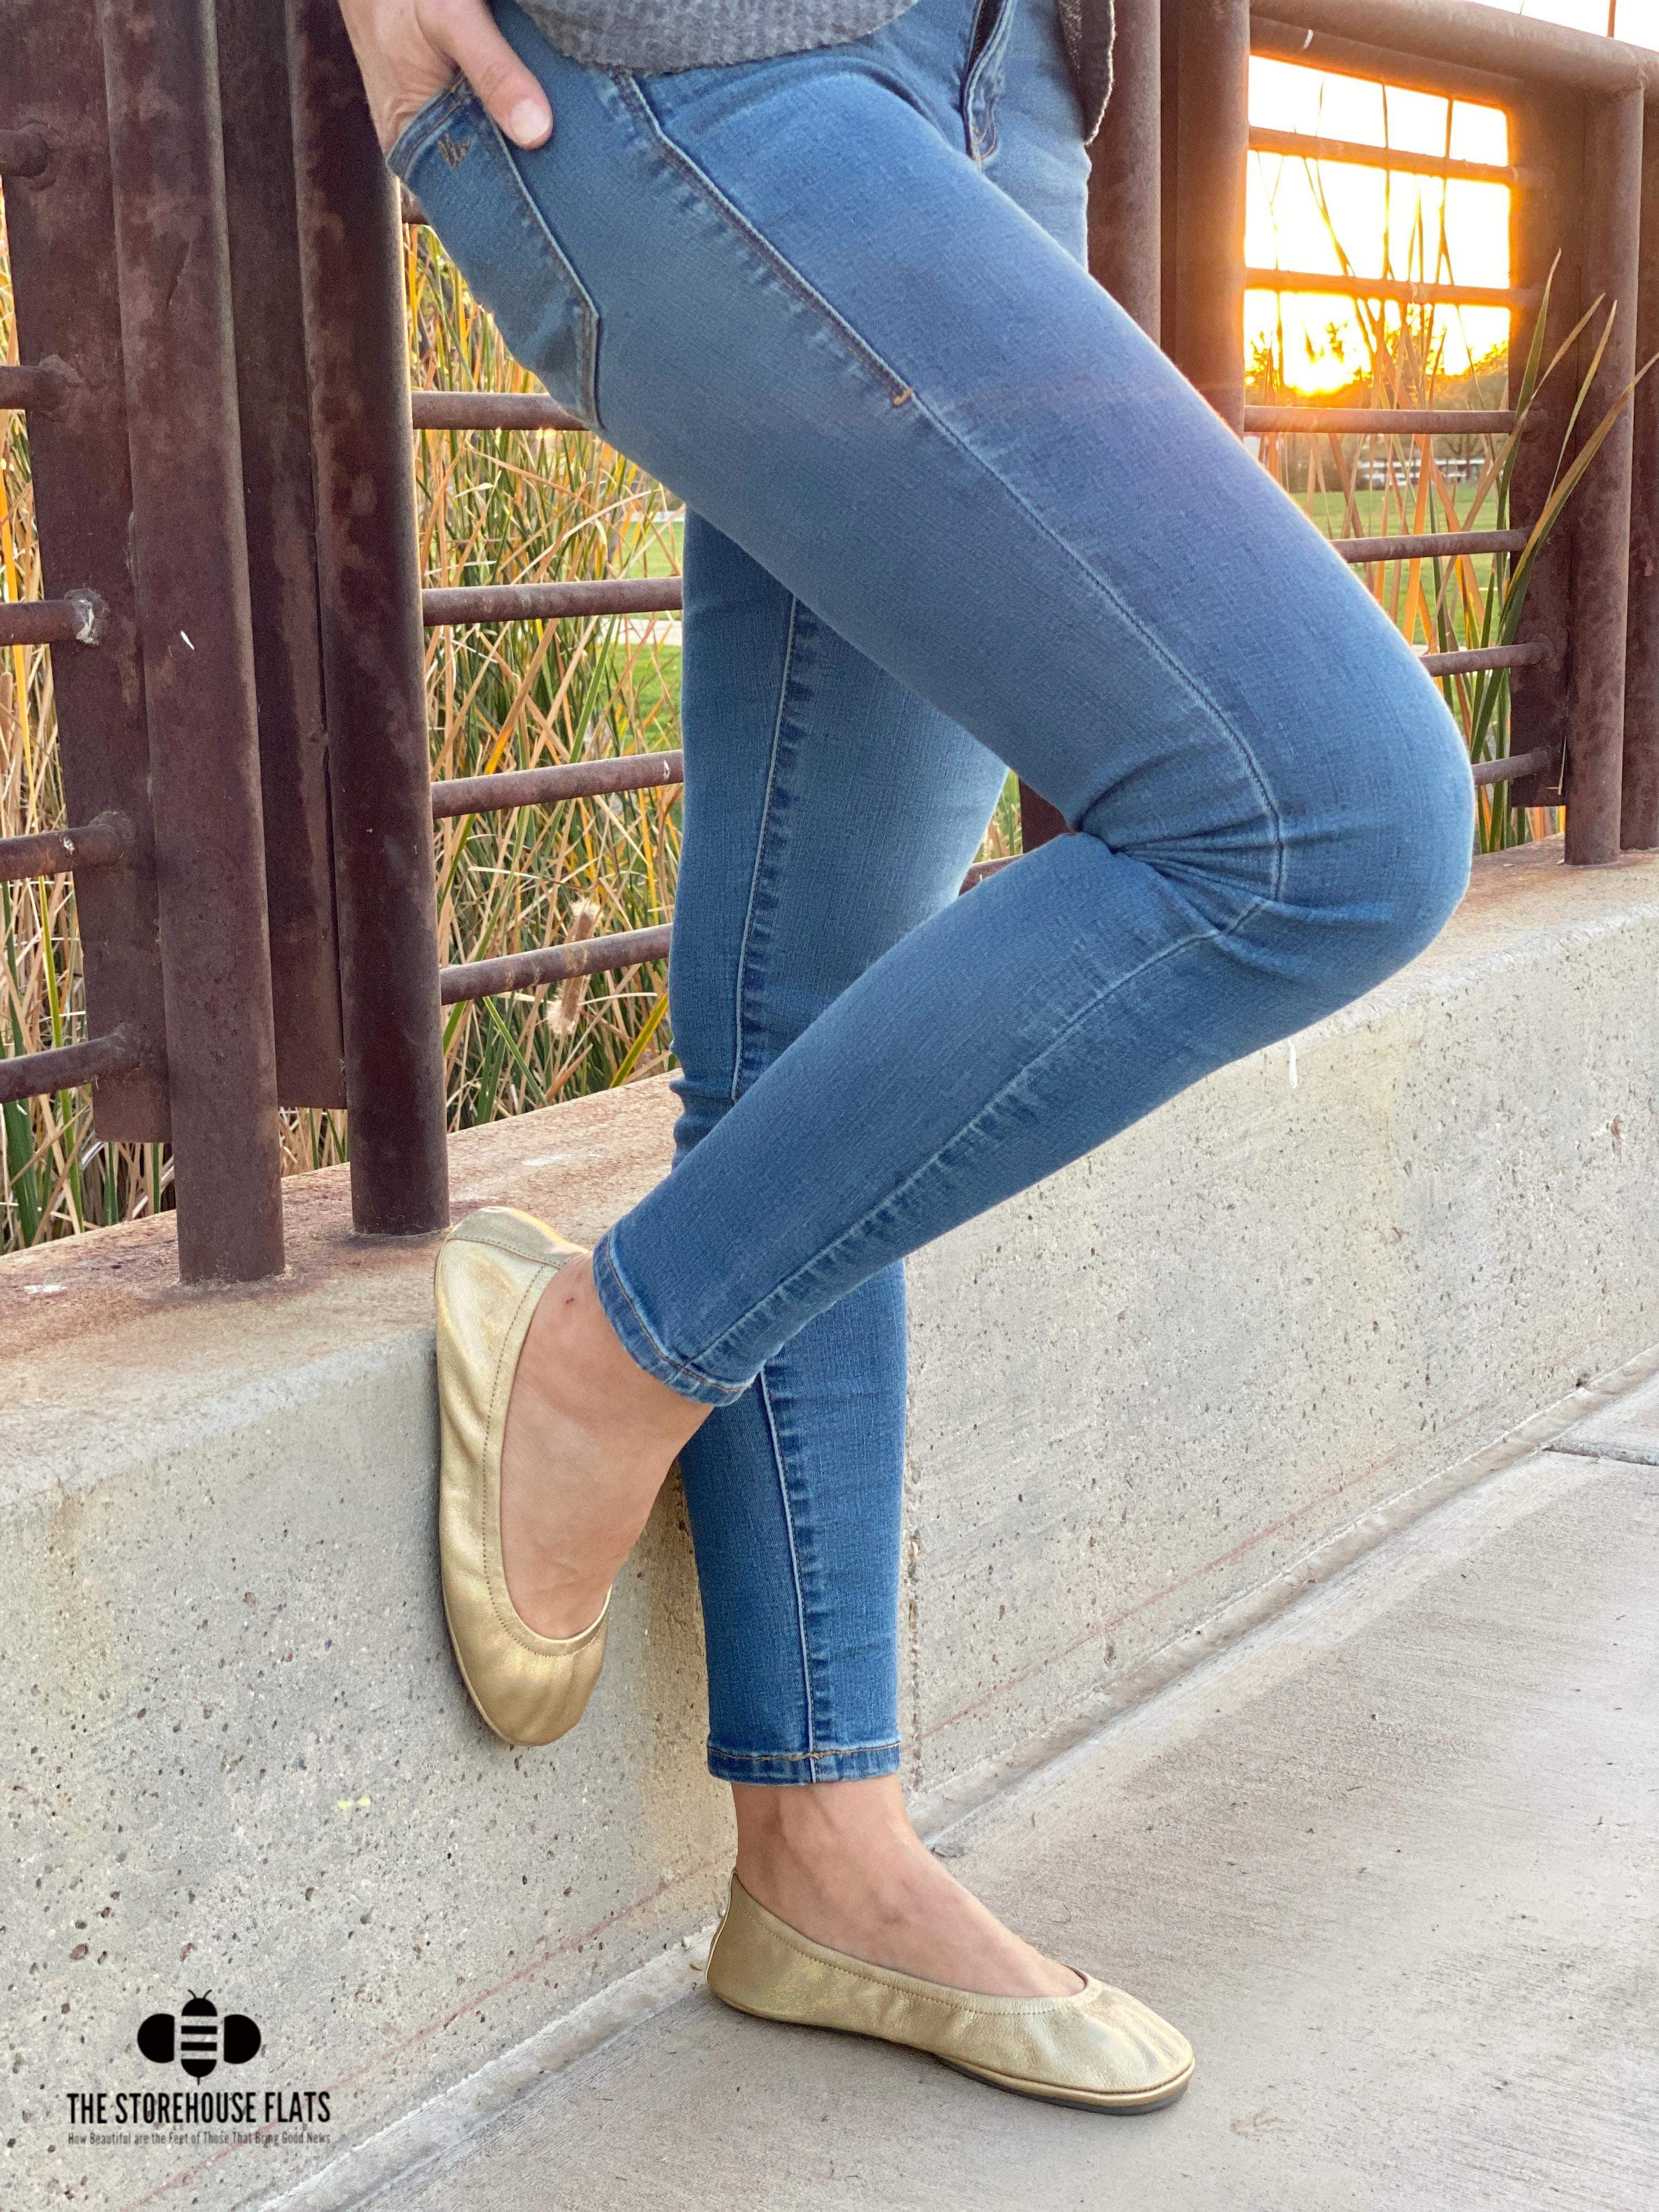 GOLDEN RAINBOW | IN STOCK - The Storehouse Flats